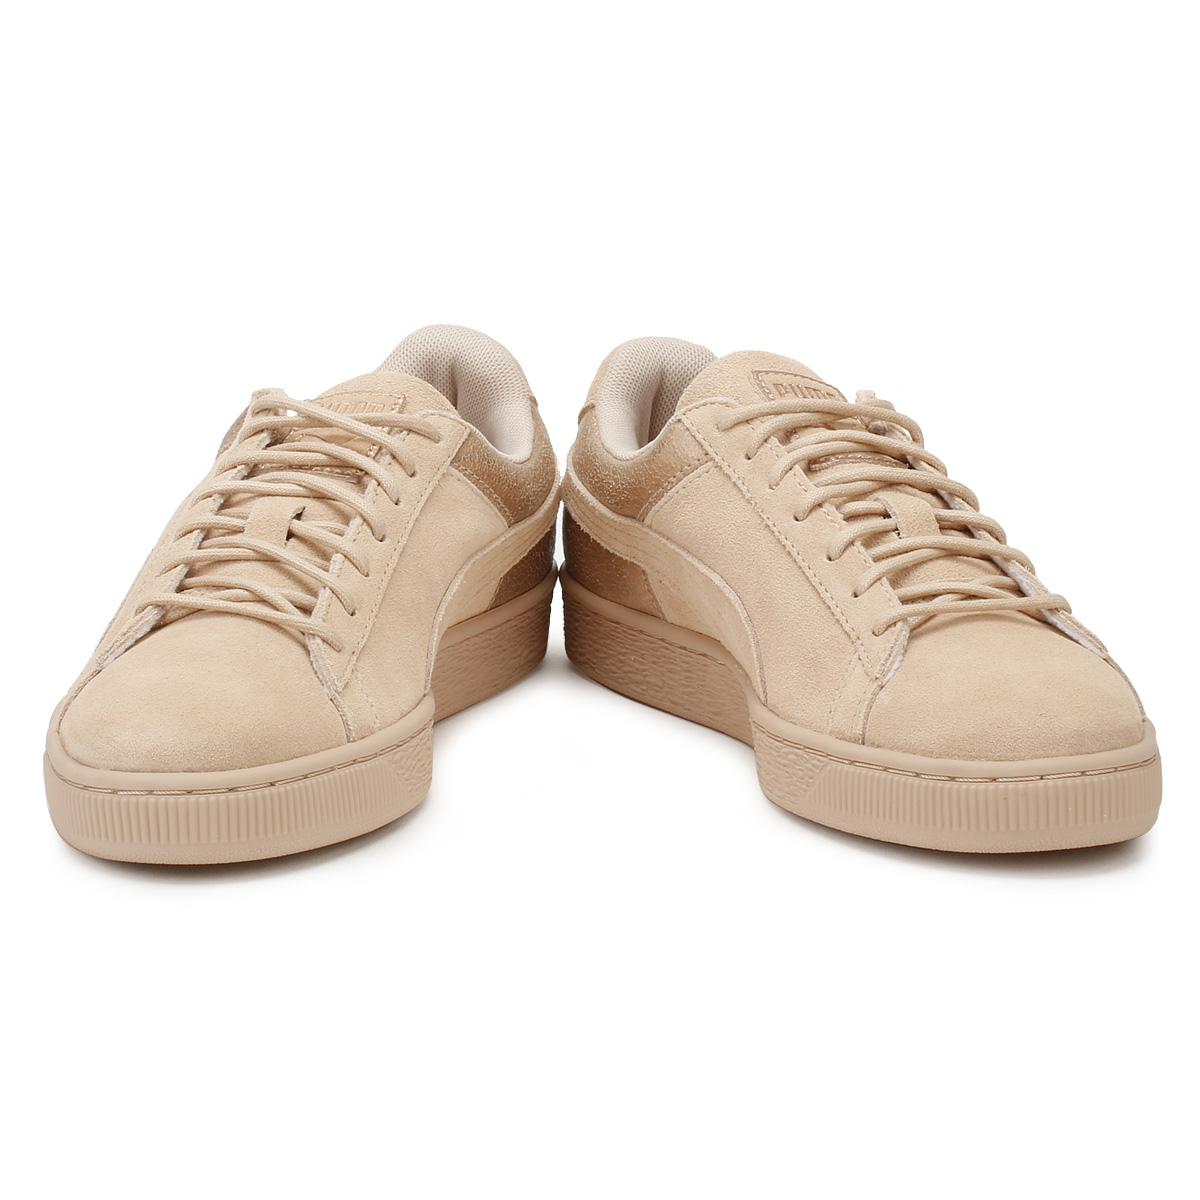 46fe1db0236 PUMA Womens Trainers Cream Tan LunaLux Suede Ladies Lace Up Sport Casual  Shoes